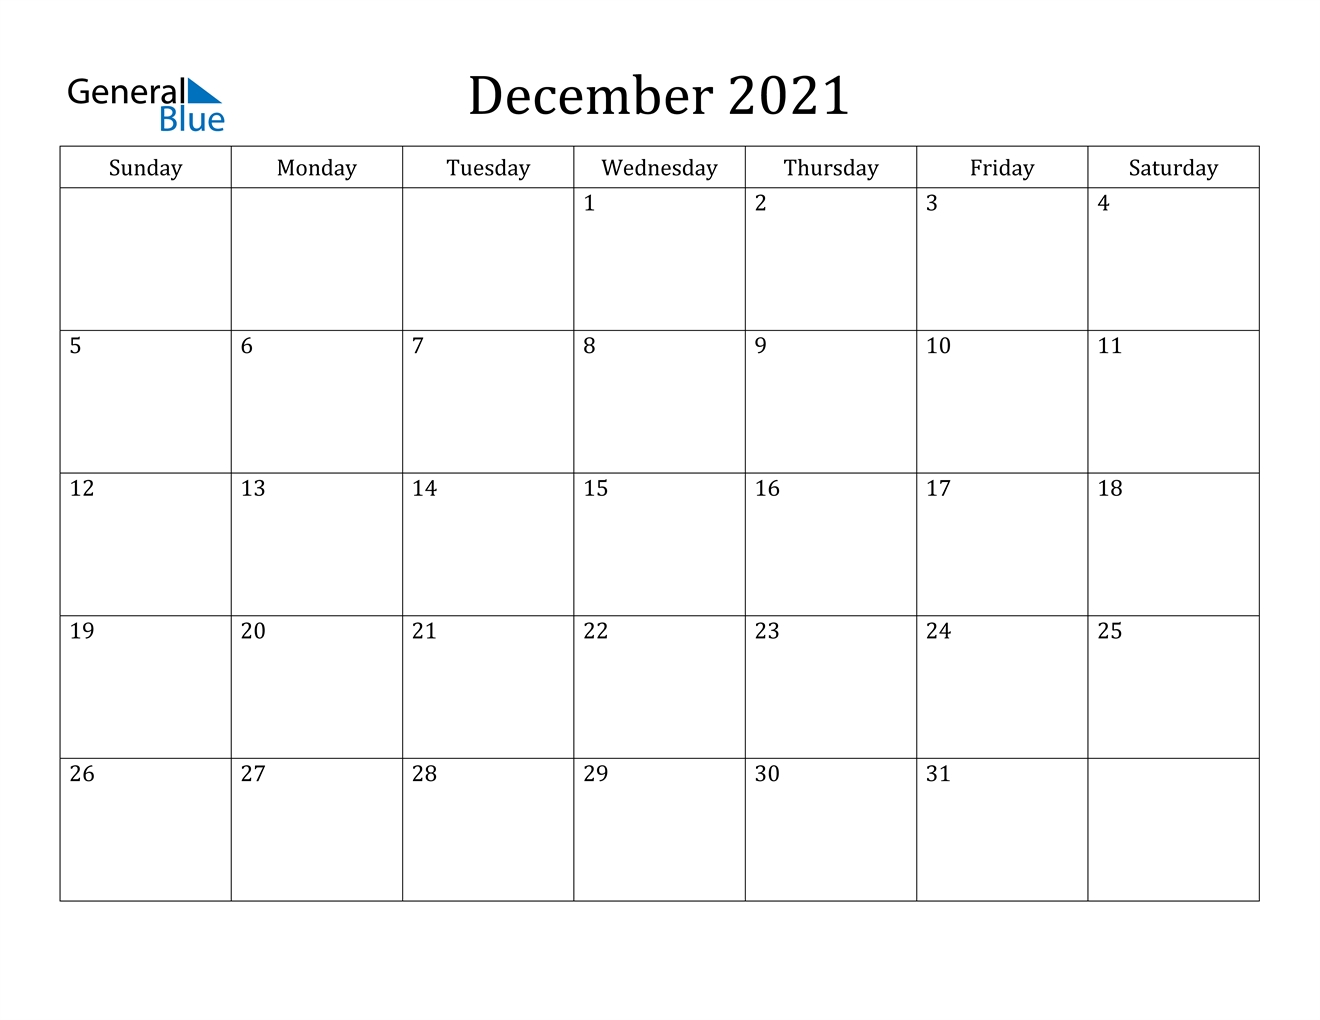 Collect December Calender Images 2021